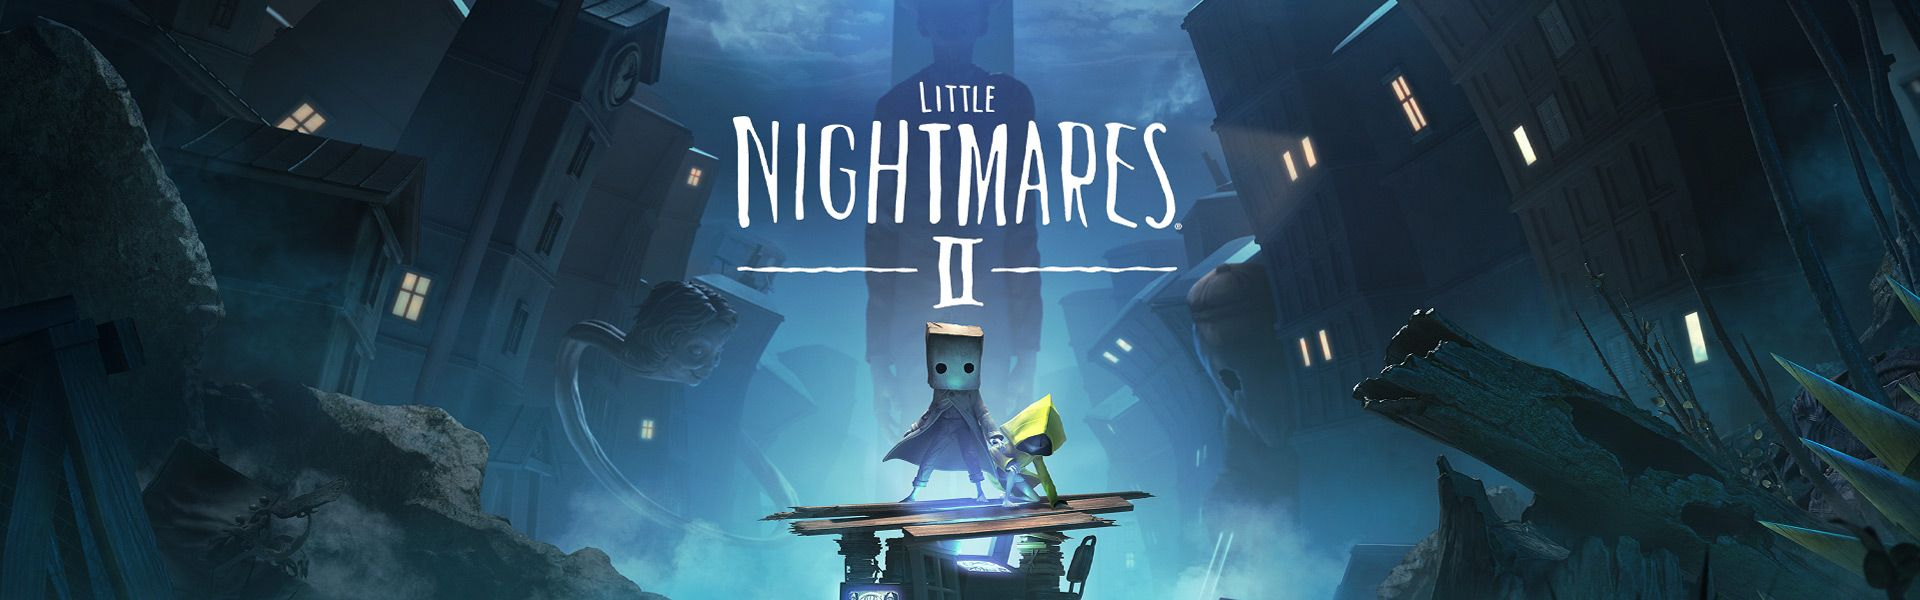 LITTLE NIGHTMARES II - DAY 1 EDITION [PS4]